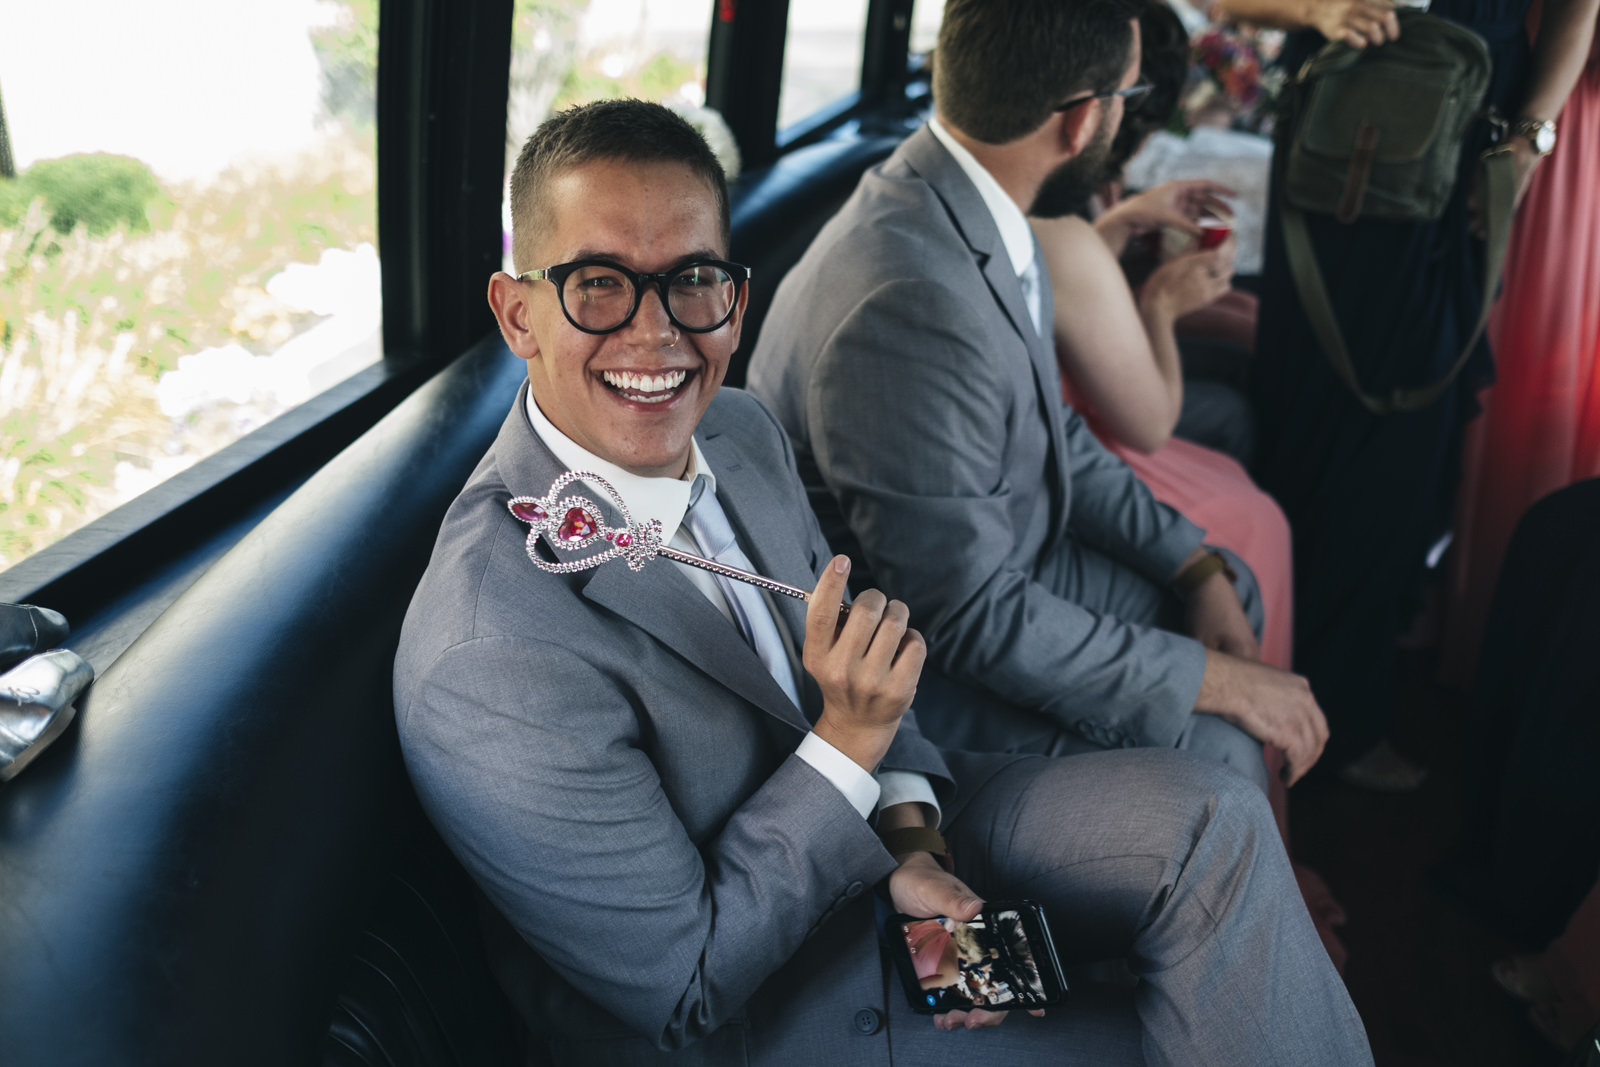 Officiant sits in a Childers party bus on the way to Swan Creek Park in Toledo, Ohio.